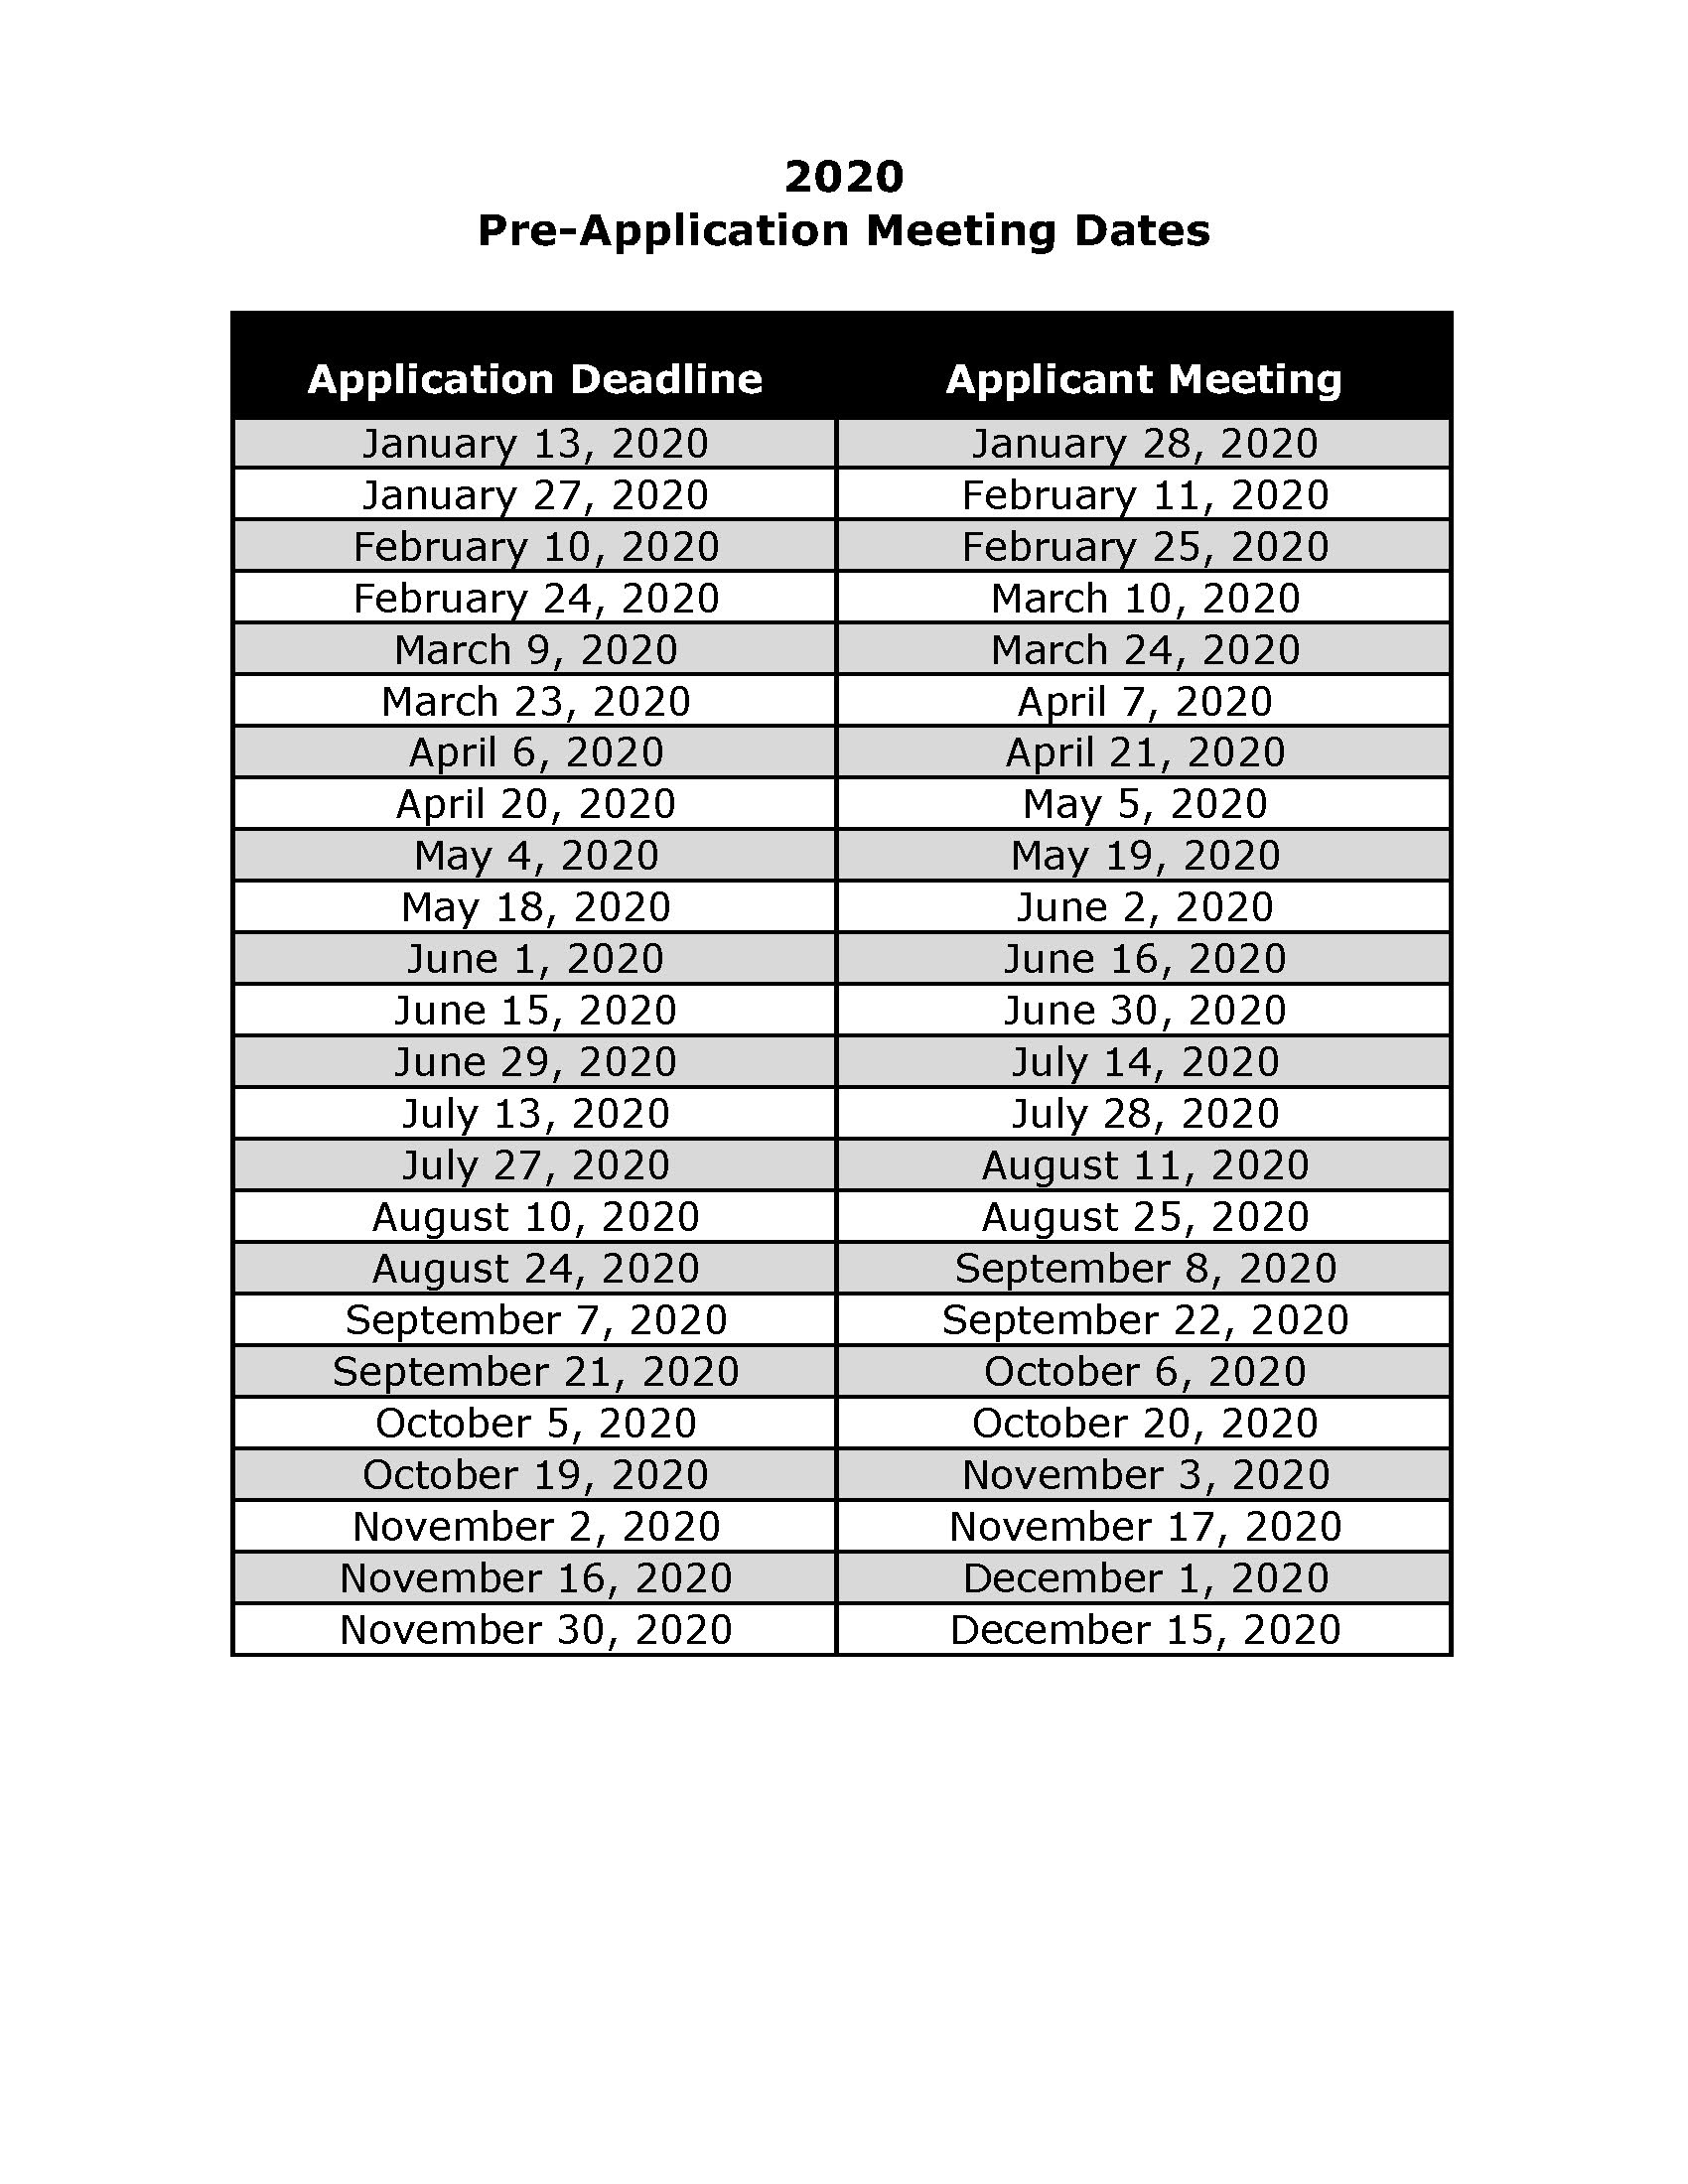 2020 Pre-Application Meeting Schedule